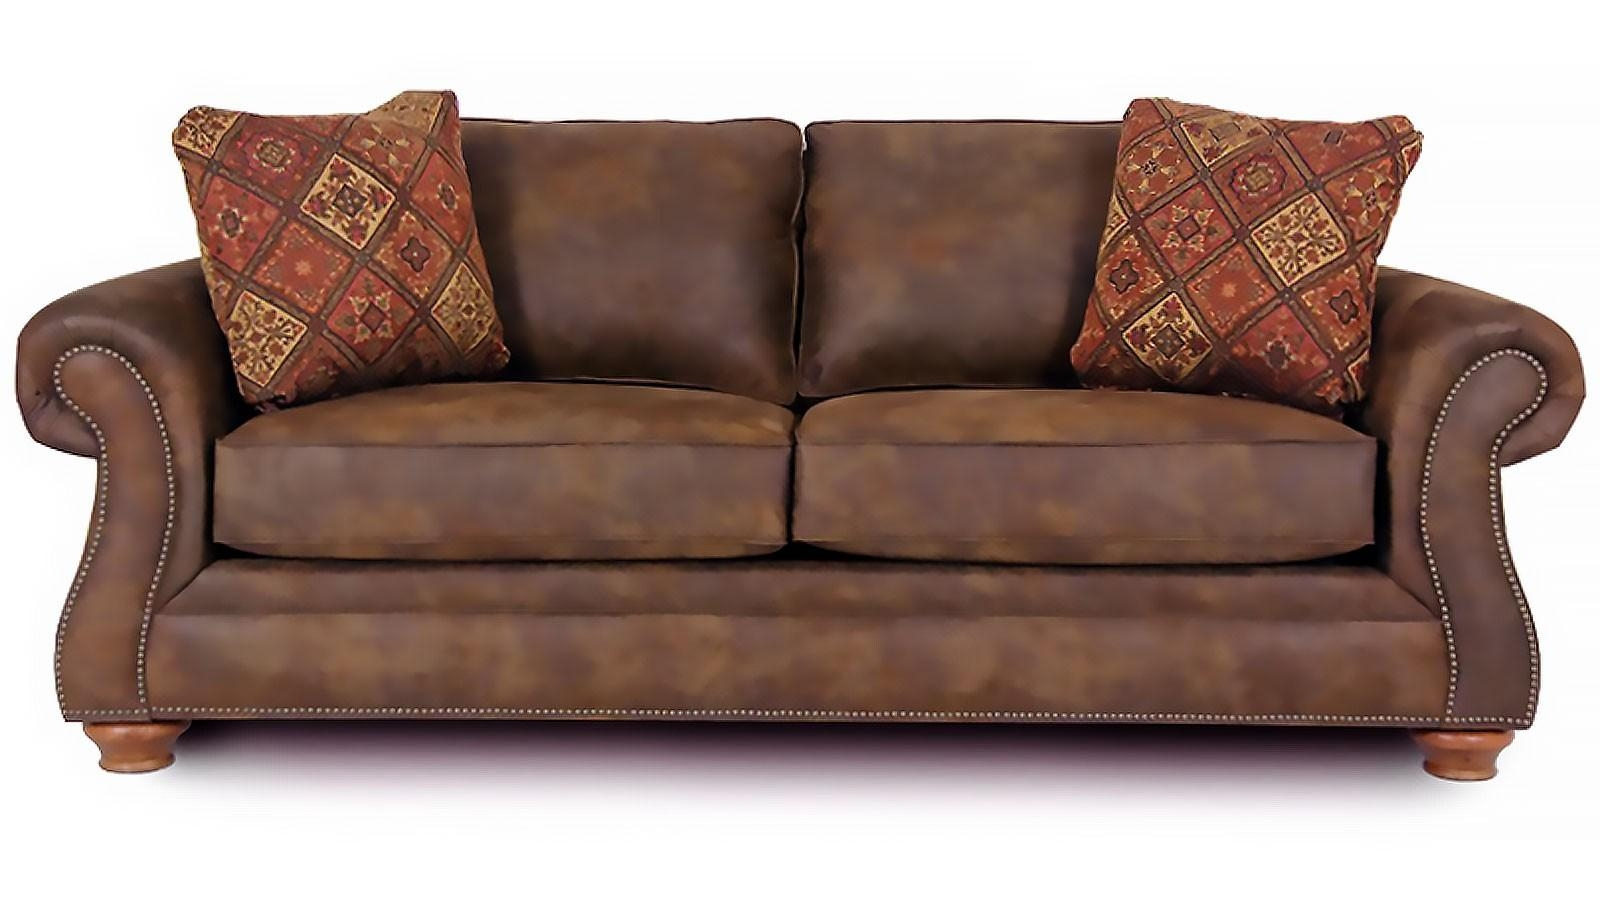 Broyhill Furniture | Gallery Furniture With Regard To Broyhill Perspectives Sofas (Image 5 of 20)